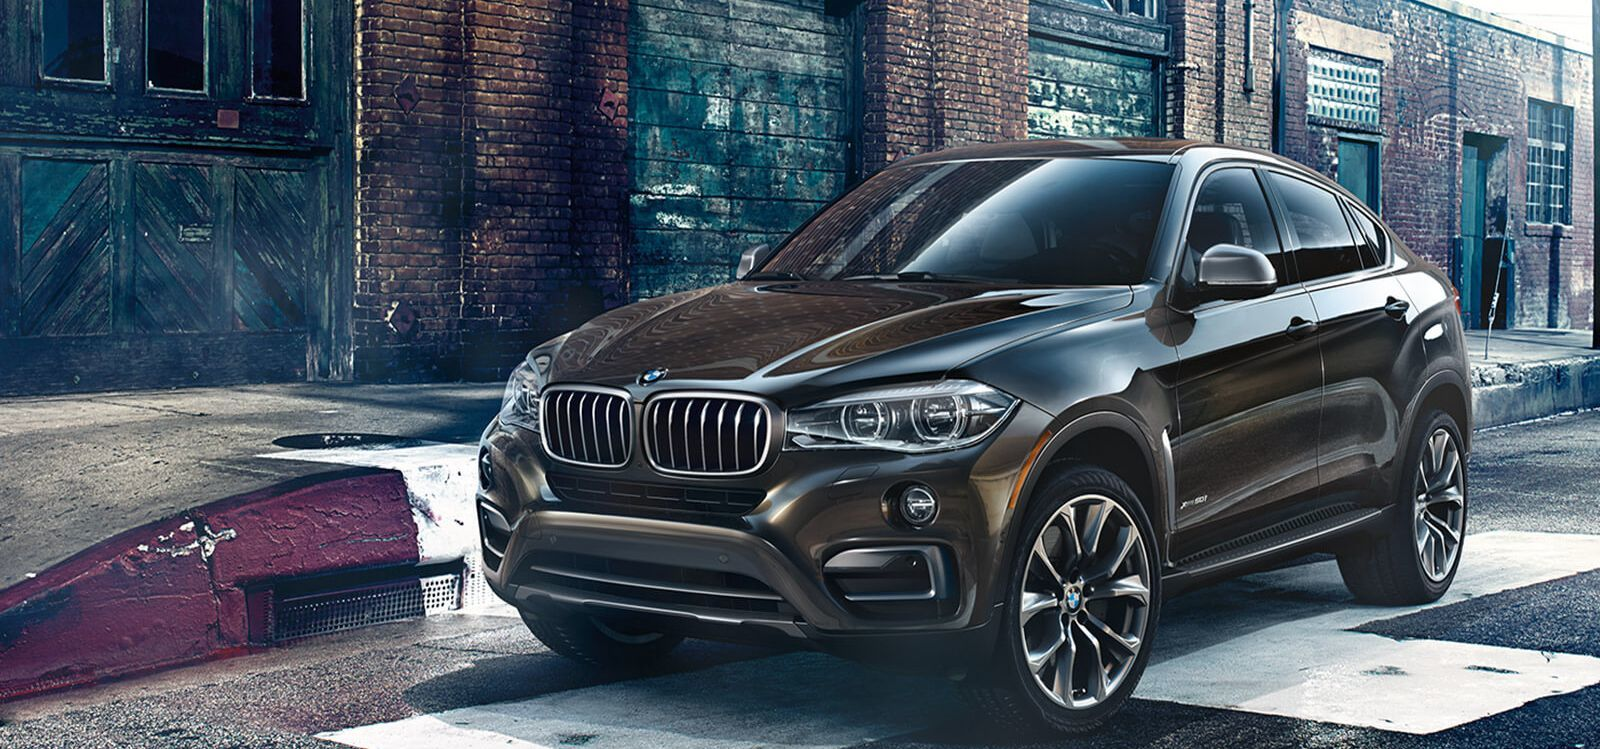 2017 BMW X6 Leasing near Olympia Fields, IL